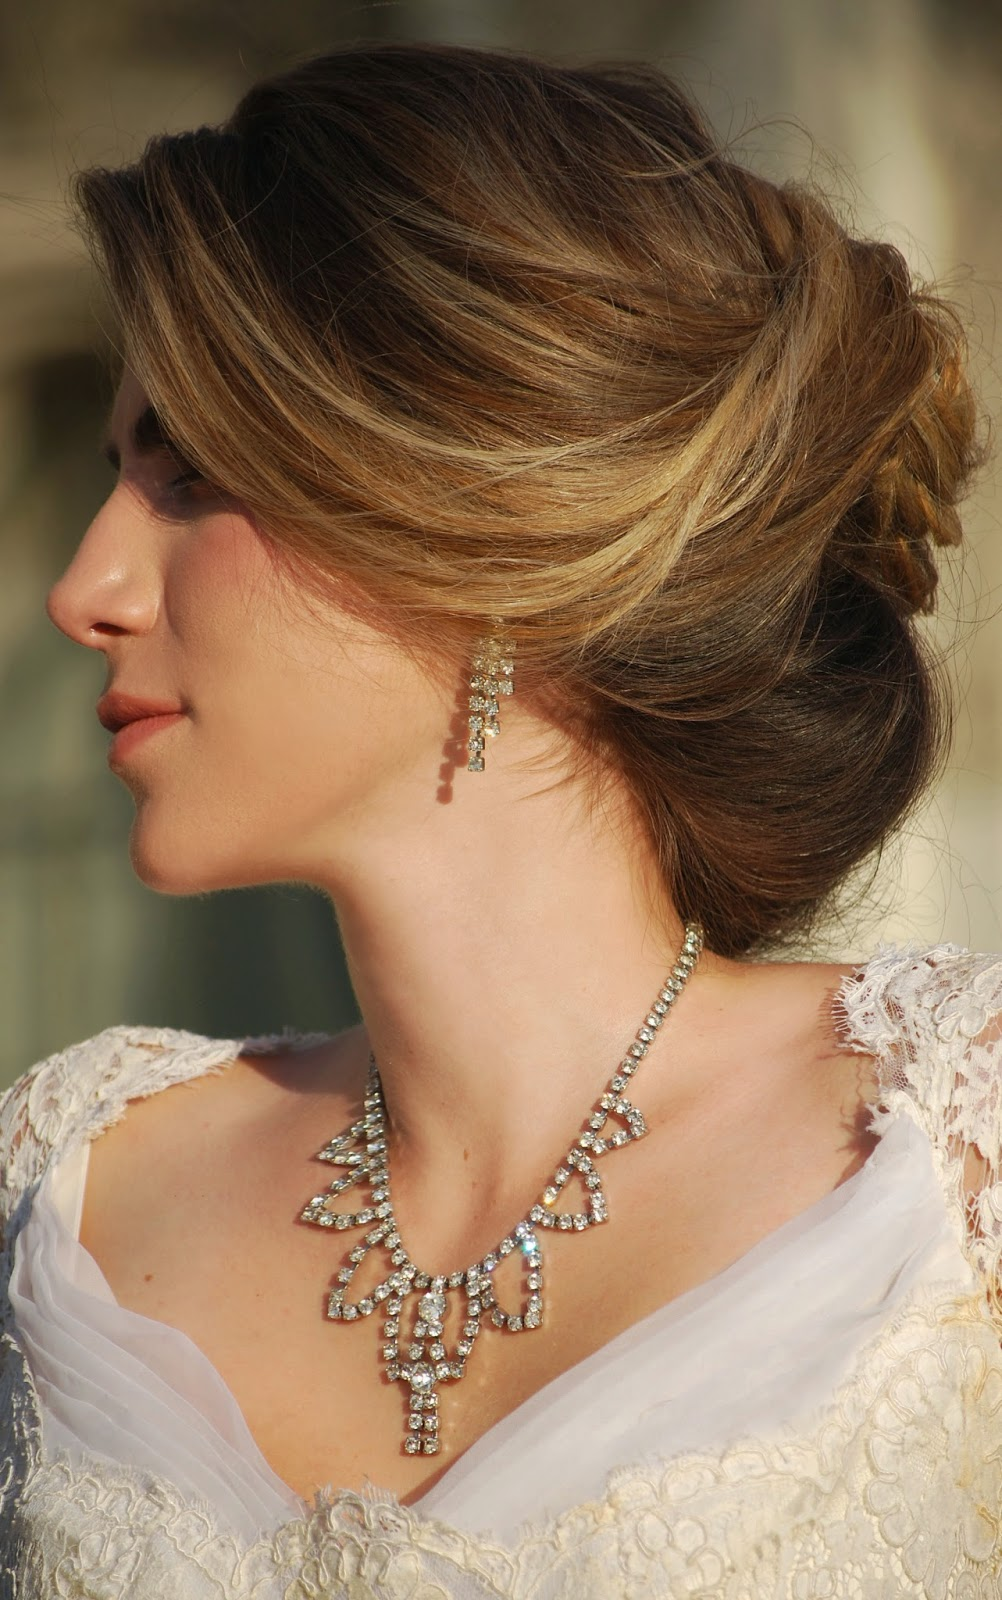 Achieving Glamorous Wedding Hair